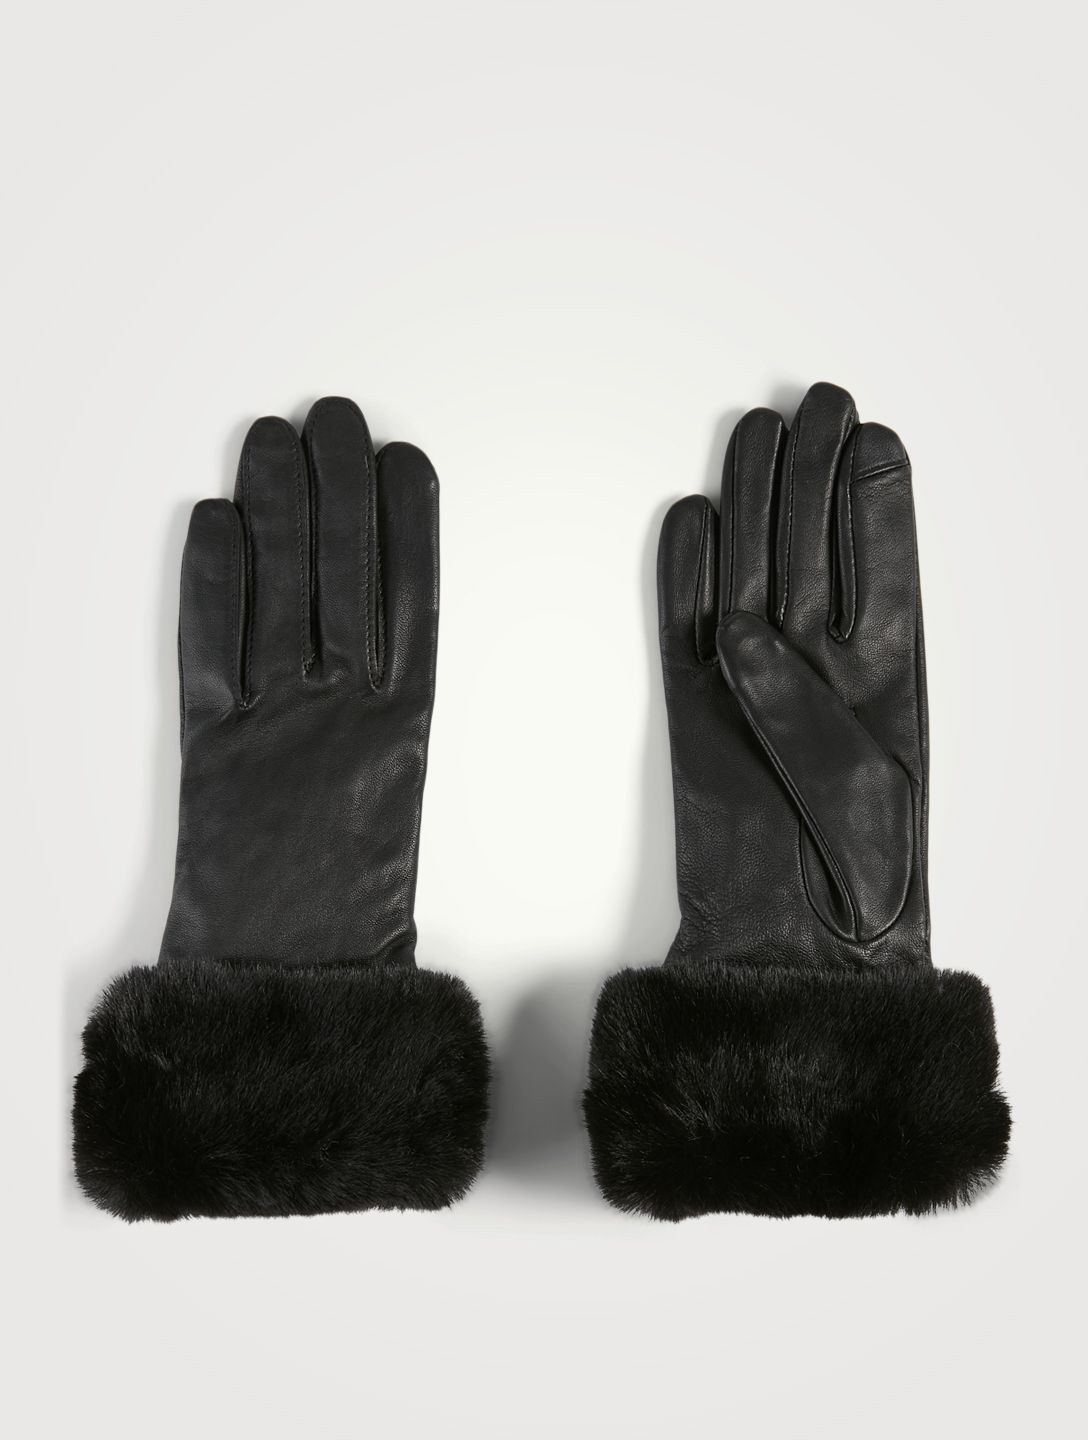 FOWNES BROTHERS & CO Leather Tech Gloves With Faux Fur Cuff Women's Black